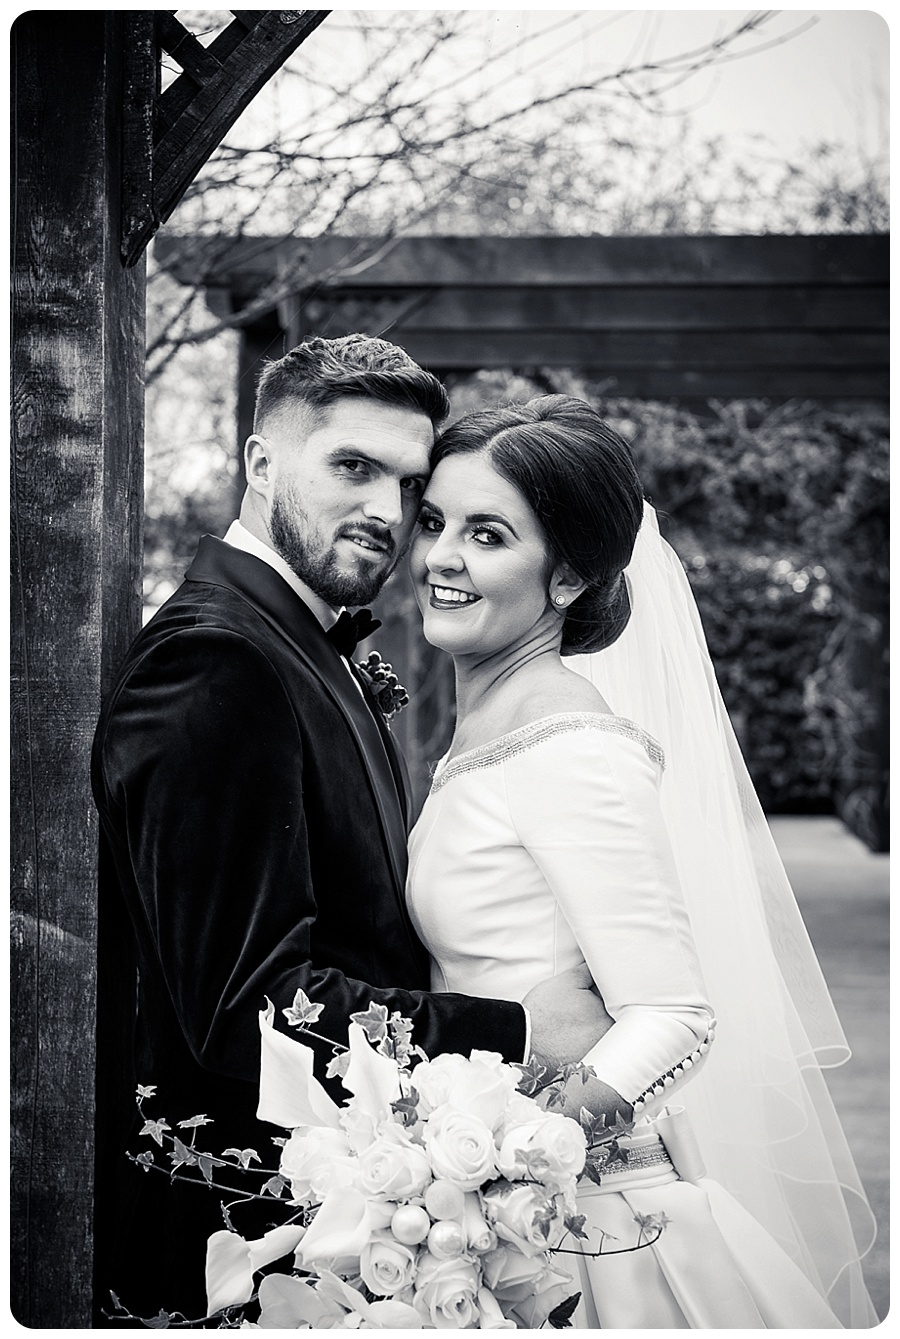 Jaclyn & Connaire's wedding at the Carrickdale Hotel & Spa by Ciaran O'Neill Photography